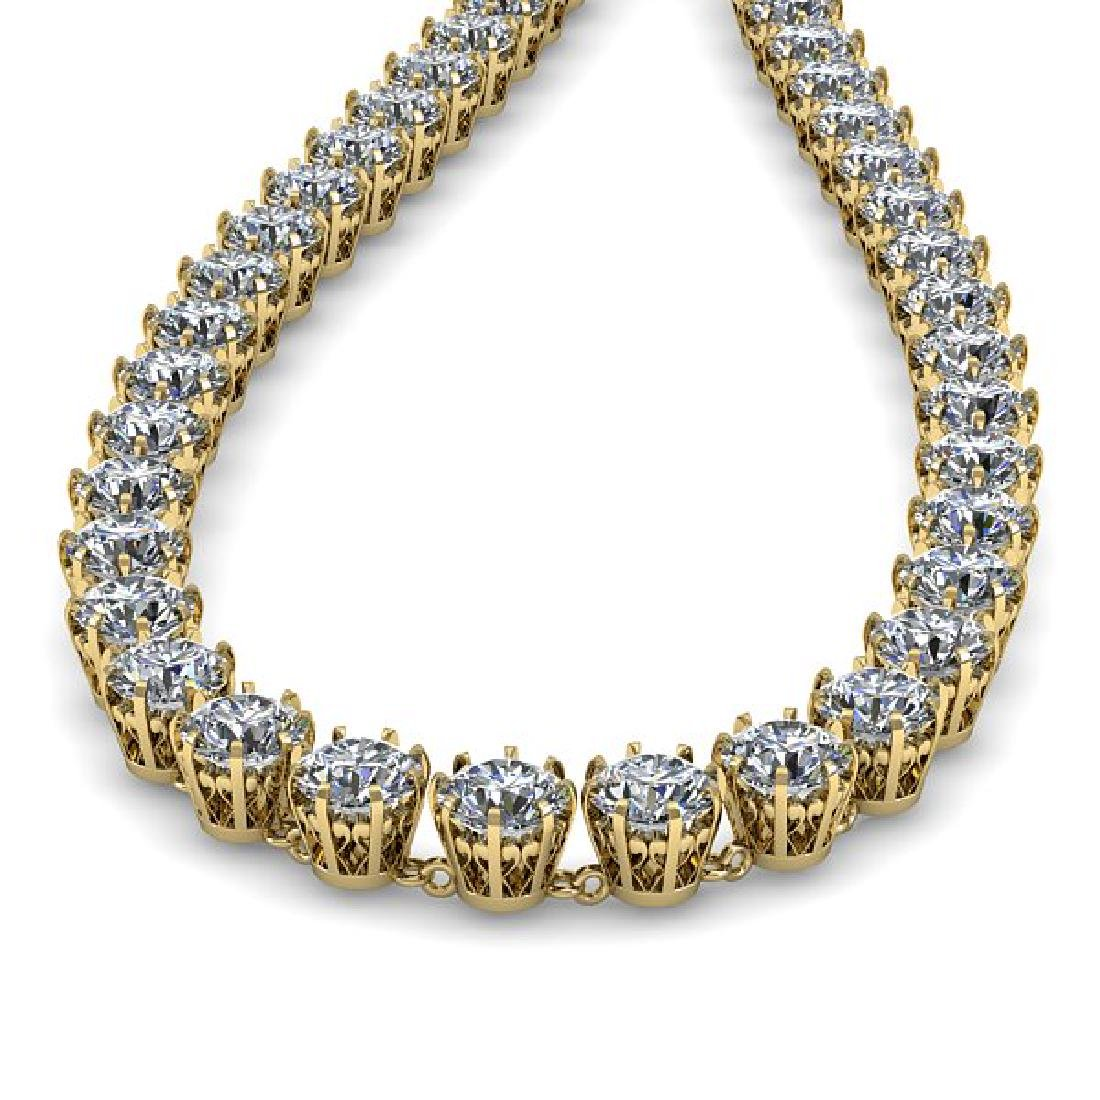 30 CTW SI Certified Diamond Necklace 14K Yellow Gold - 2